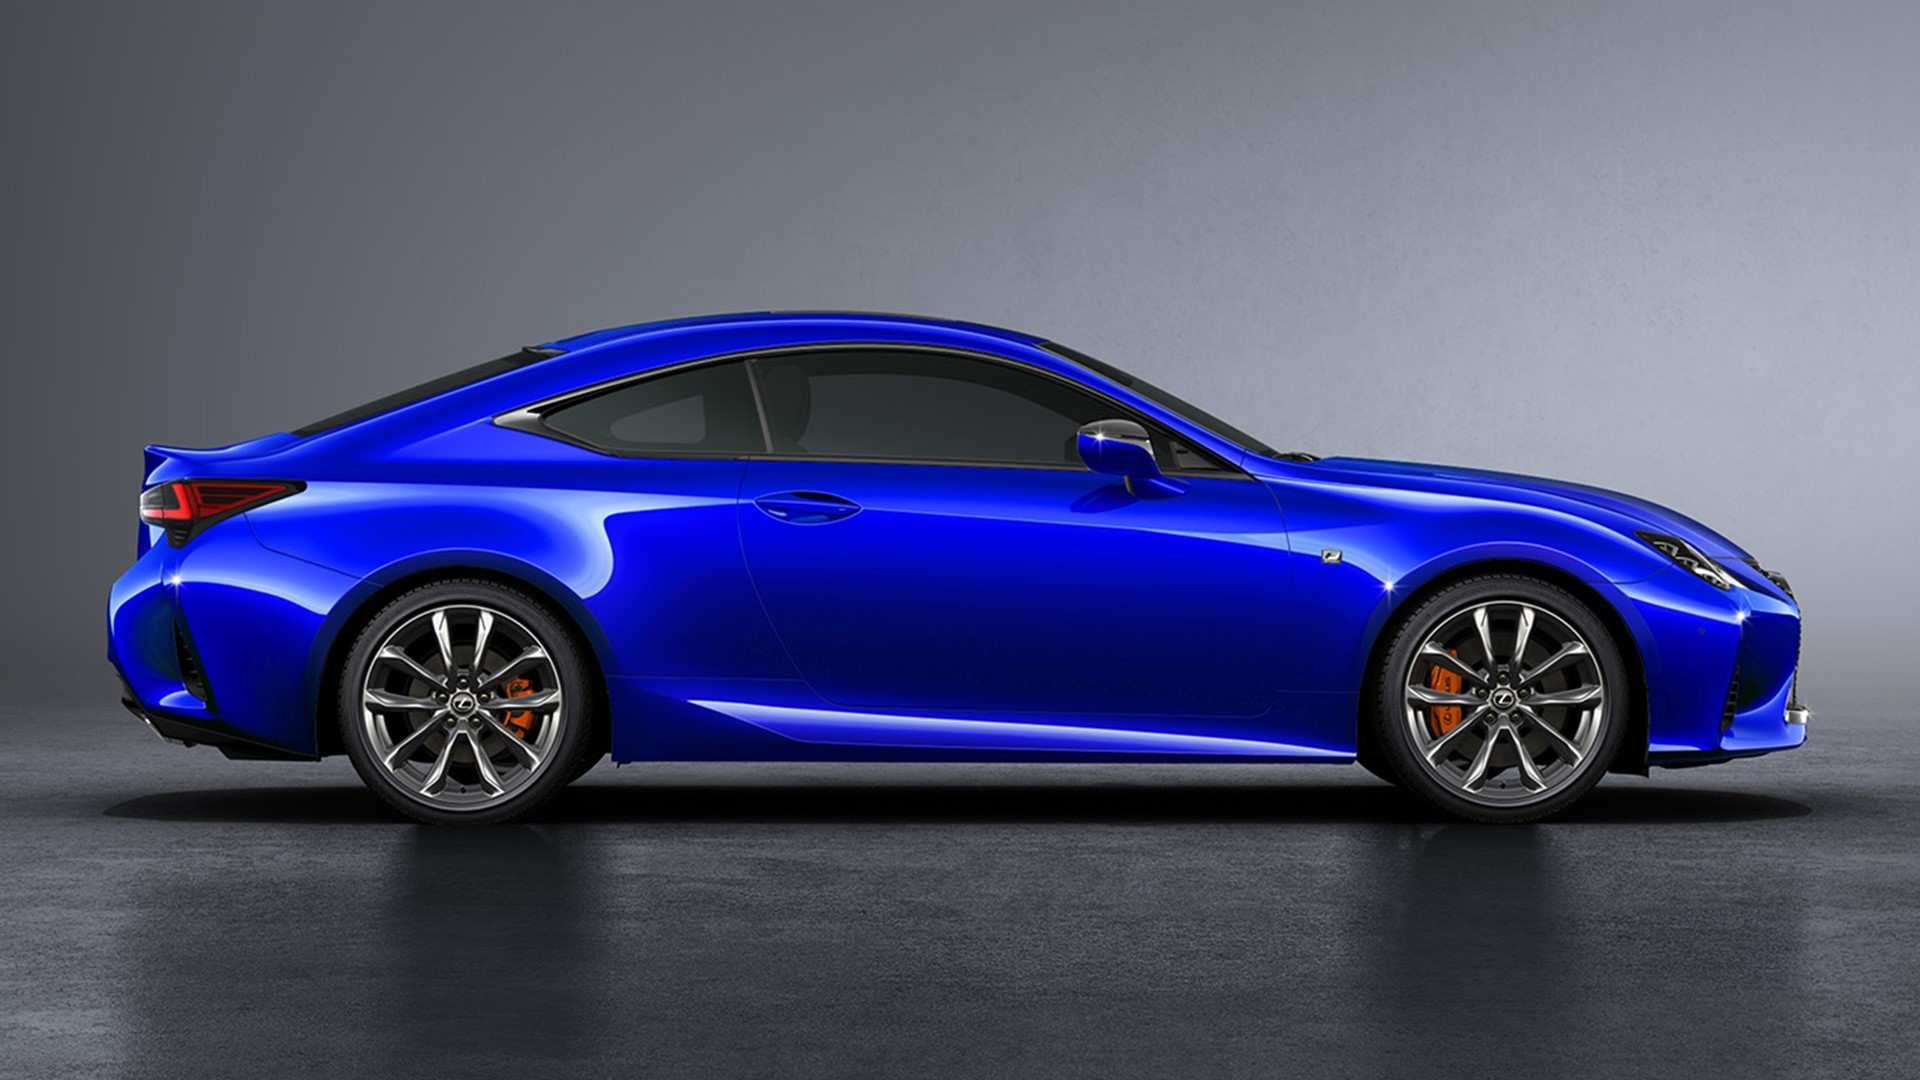 96 All New Lexus 2019 Rc Overview with Lexus 2019 Rc